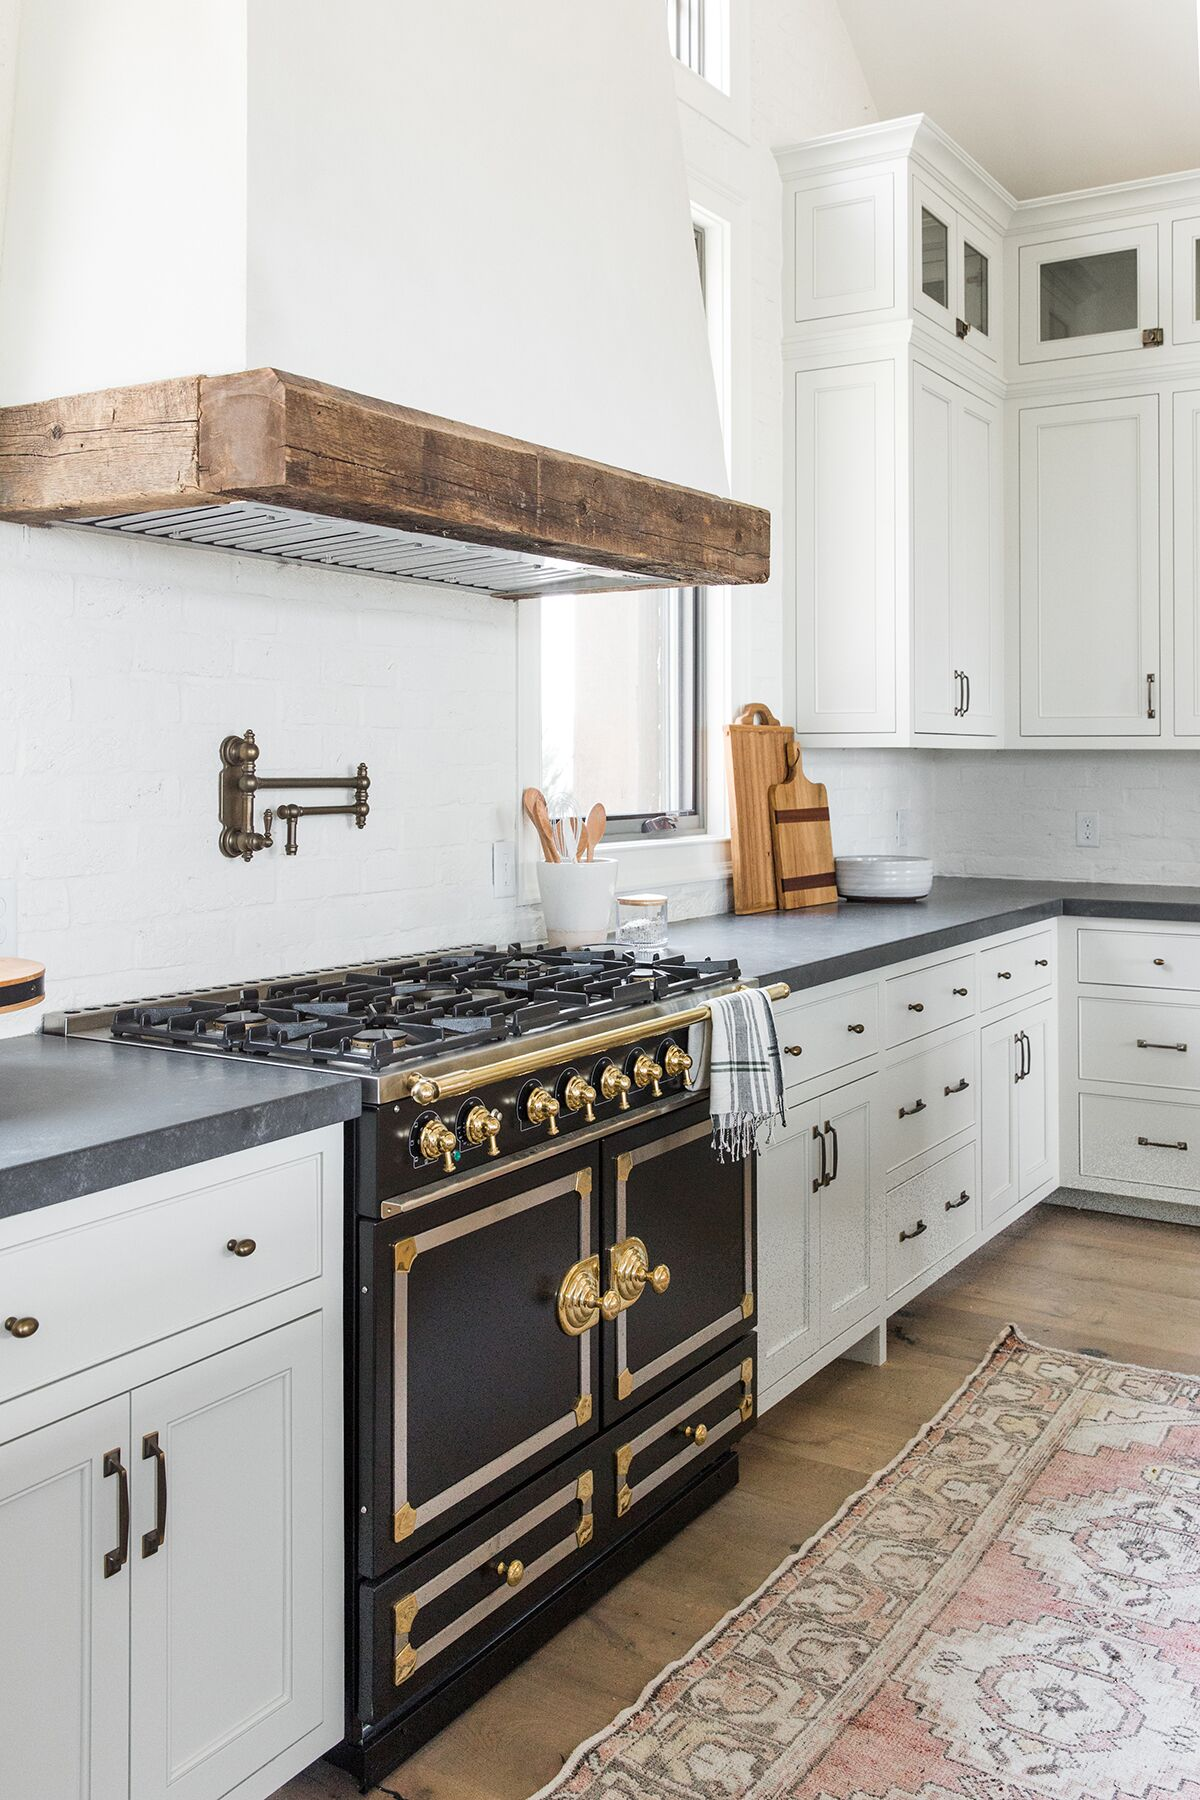 Refined,+rustic+kitchen+with+exposed+wooden+beams,+hanging+lanterns,+painted+white+brick,+oven+range+in+mountain+home+-+Studio+McGee+Design-5.jpg